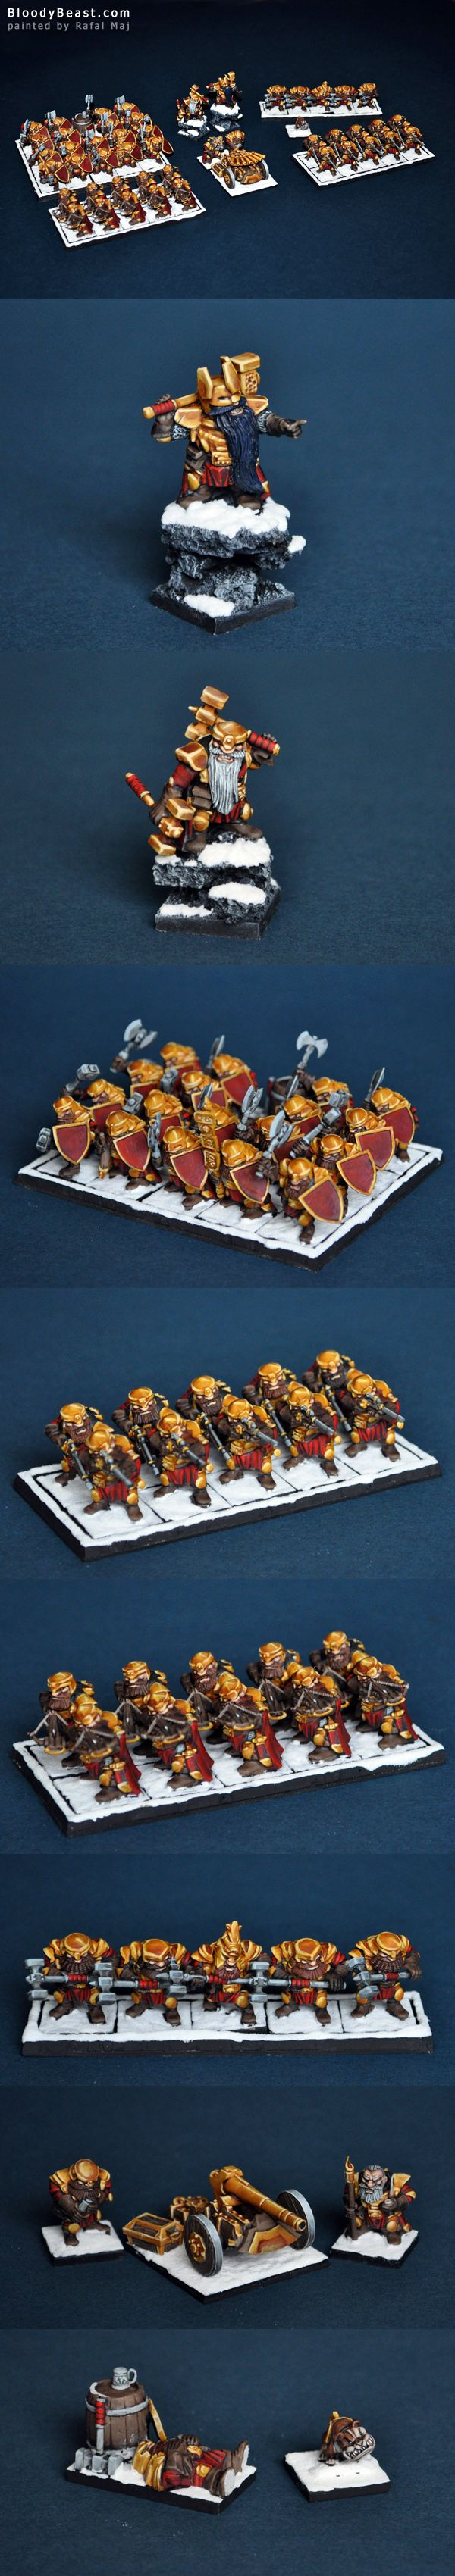 Dwarf Army for Kings of War (Mantic Games)